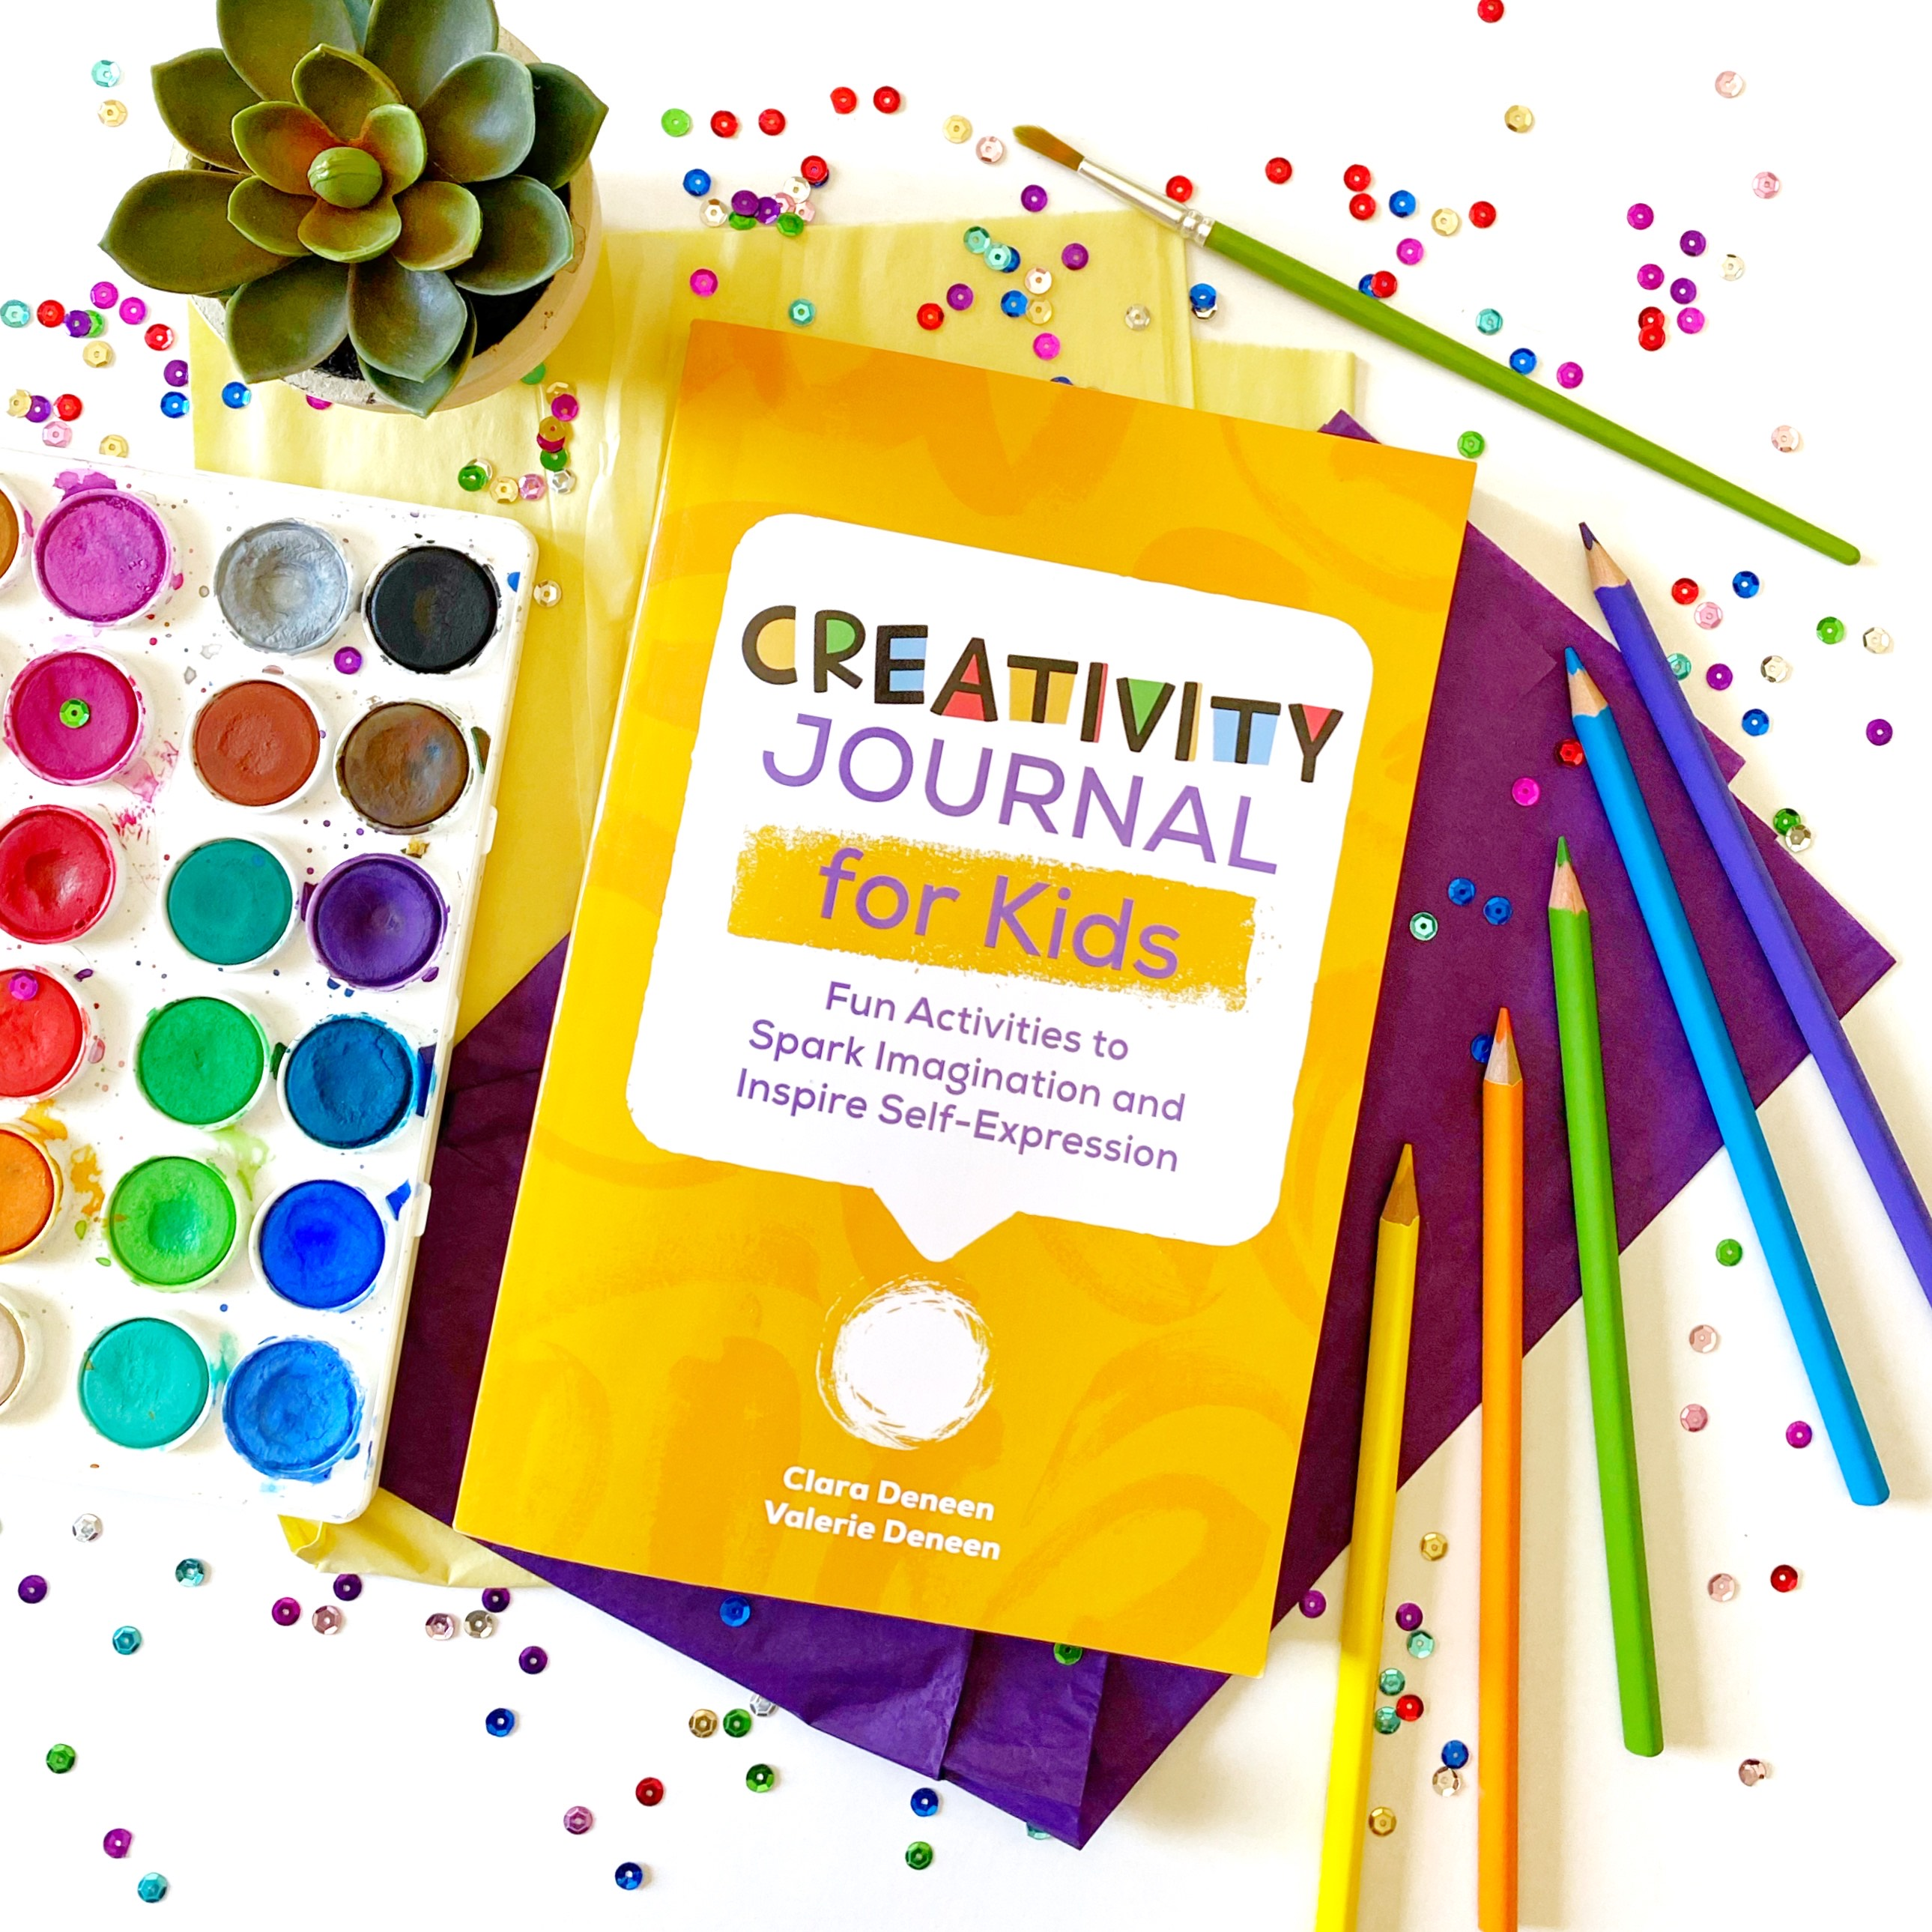 Creativity Journal for Kids - Fun activities to spark imagination and inspire self-expression